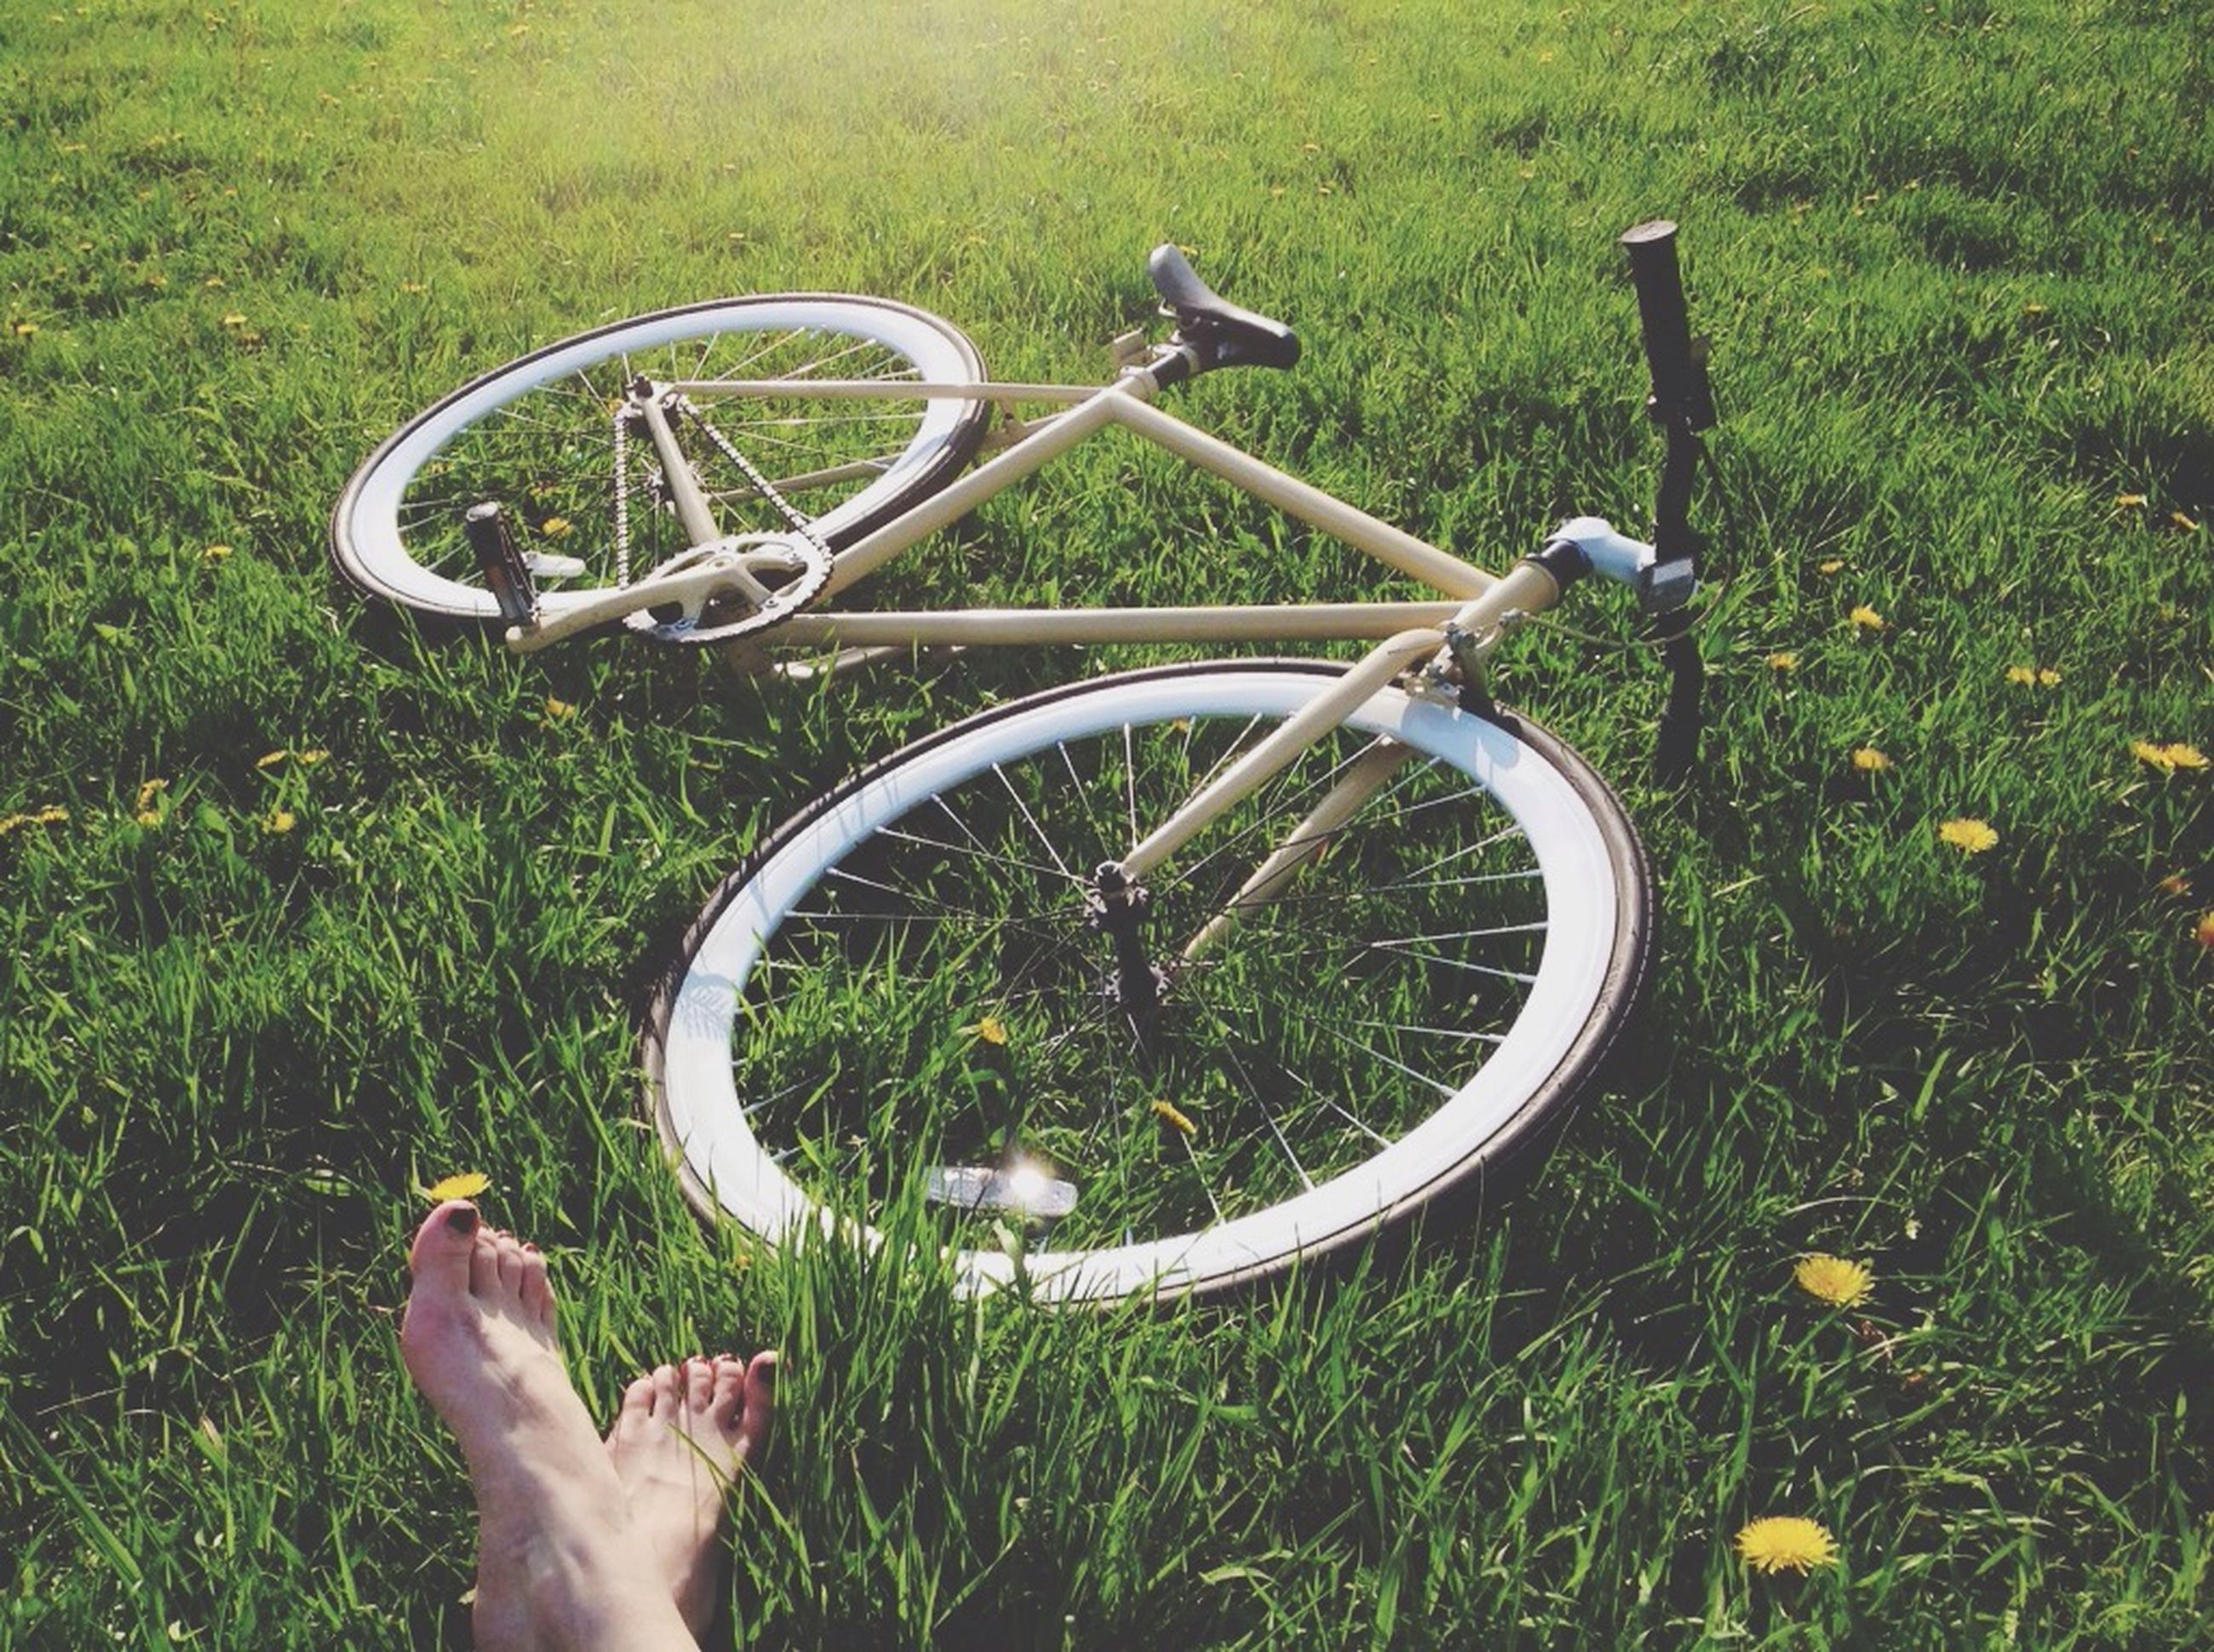 bicycle, grass, transportation, part of, low section, land vehicle, field, mode of transport, cropped, plant, outdoors, grassy, wheel, day, growth, sunlight, high angle view